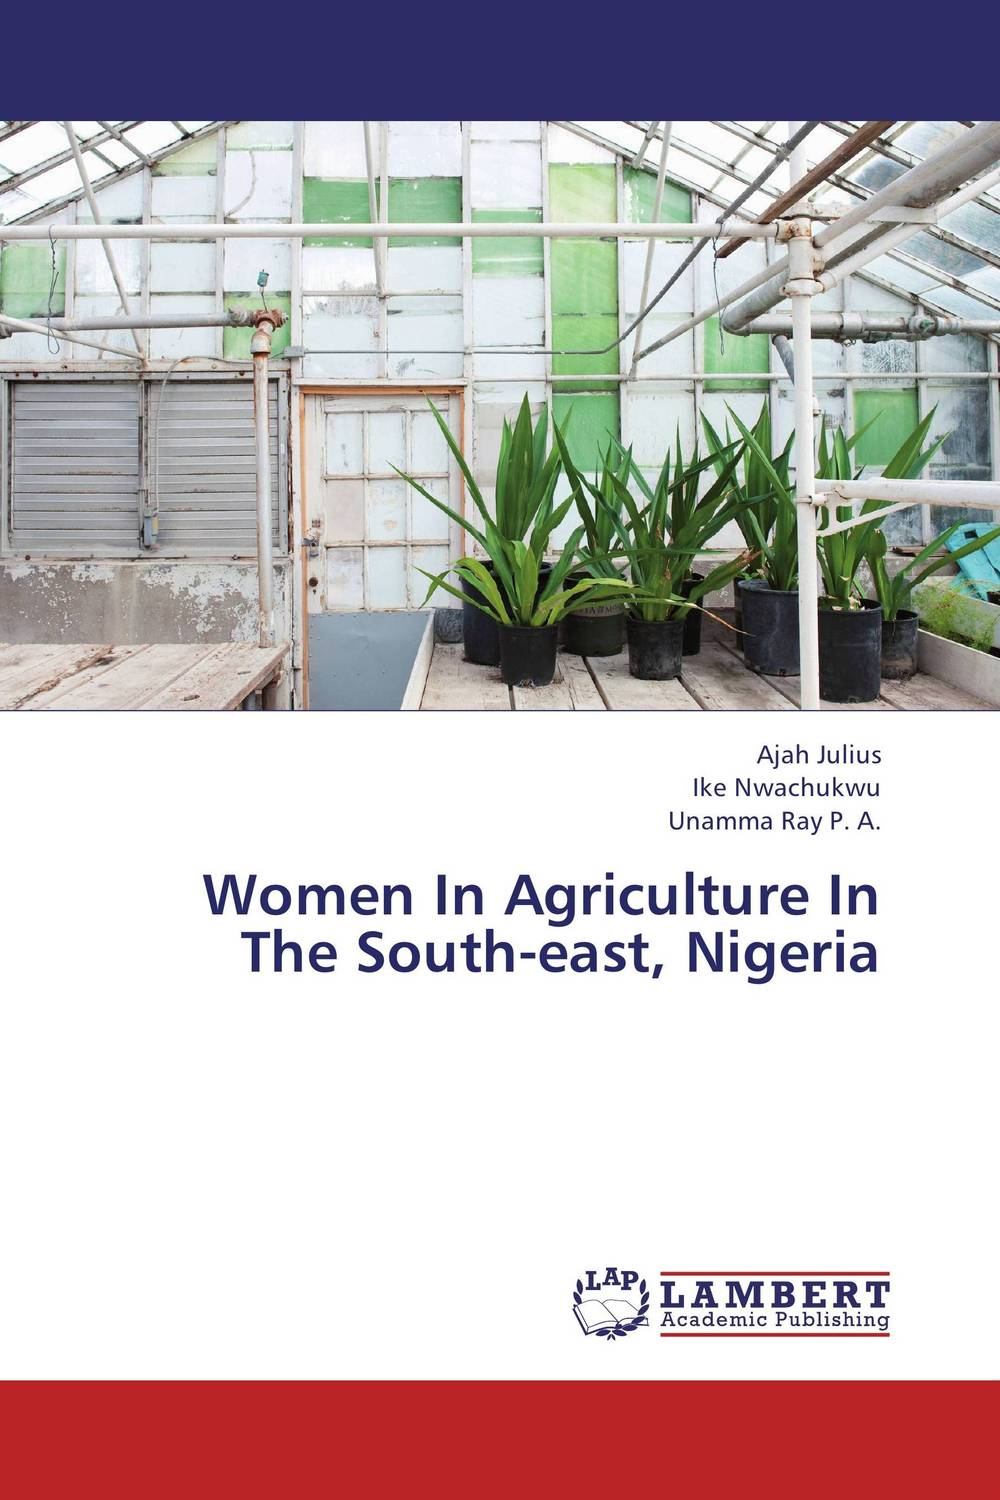 Women In Agriculture In The South-east, Nigeria programme planning in extension